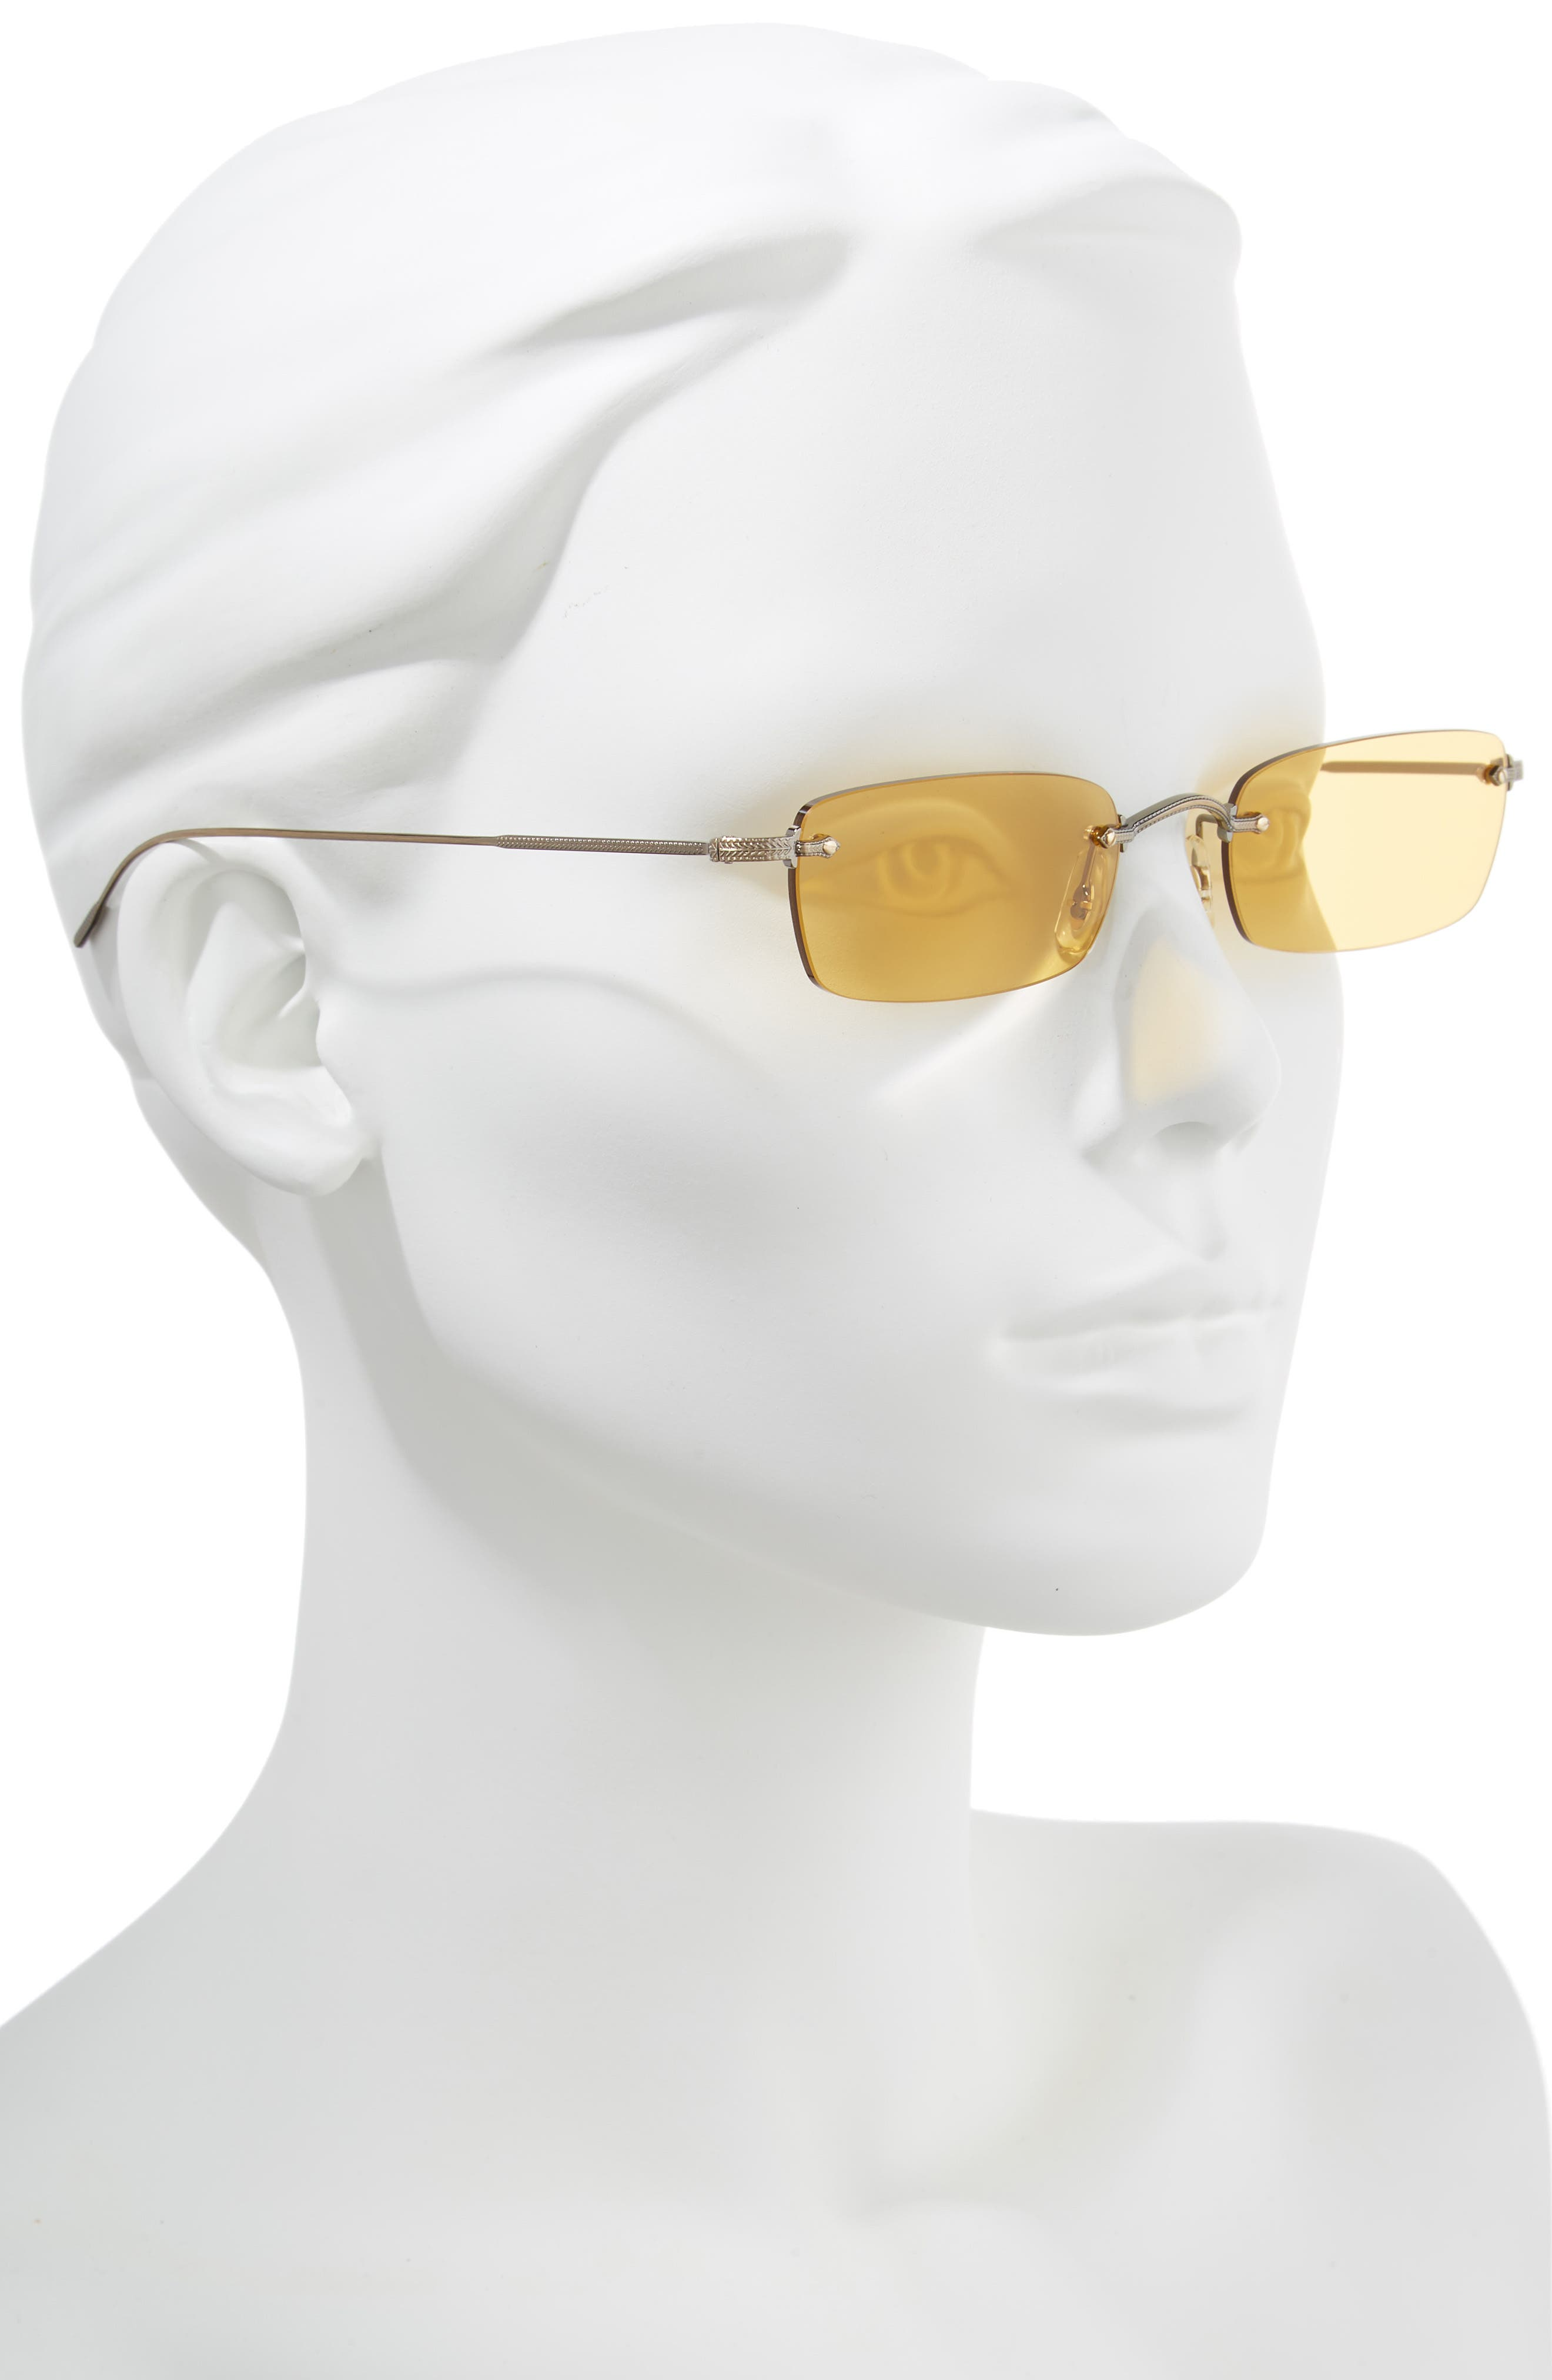 Daveigh 54mm Sunglasses,                             Alternate thumbnail 2, color,                             Mustard